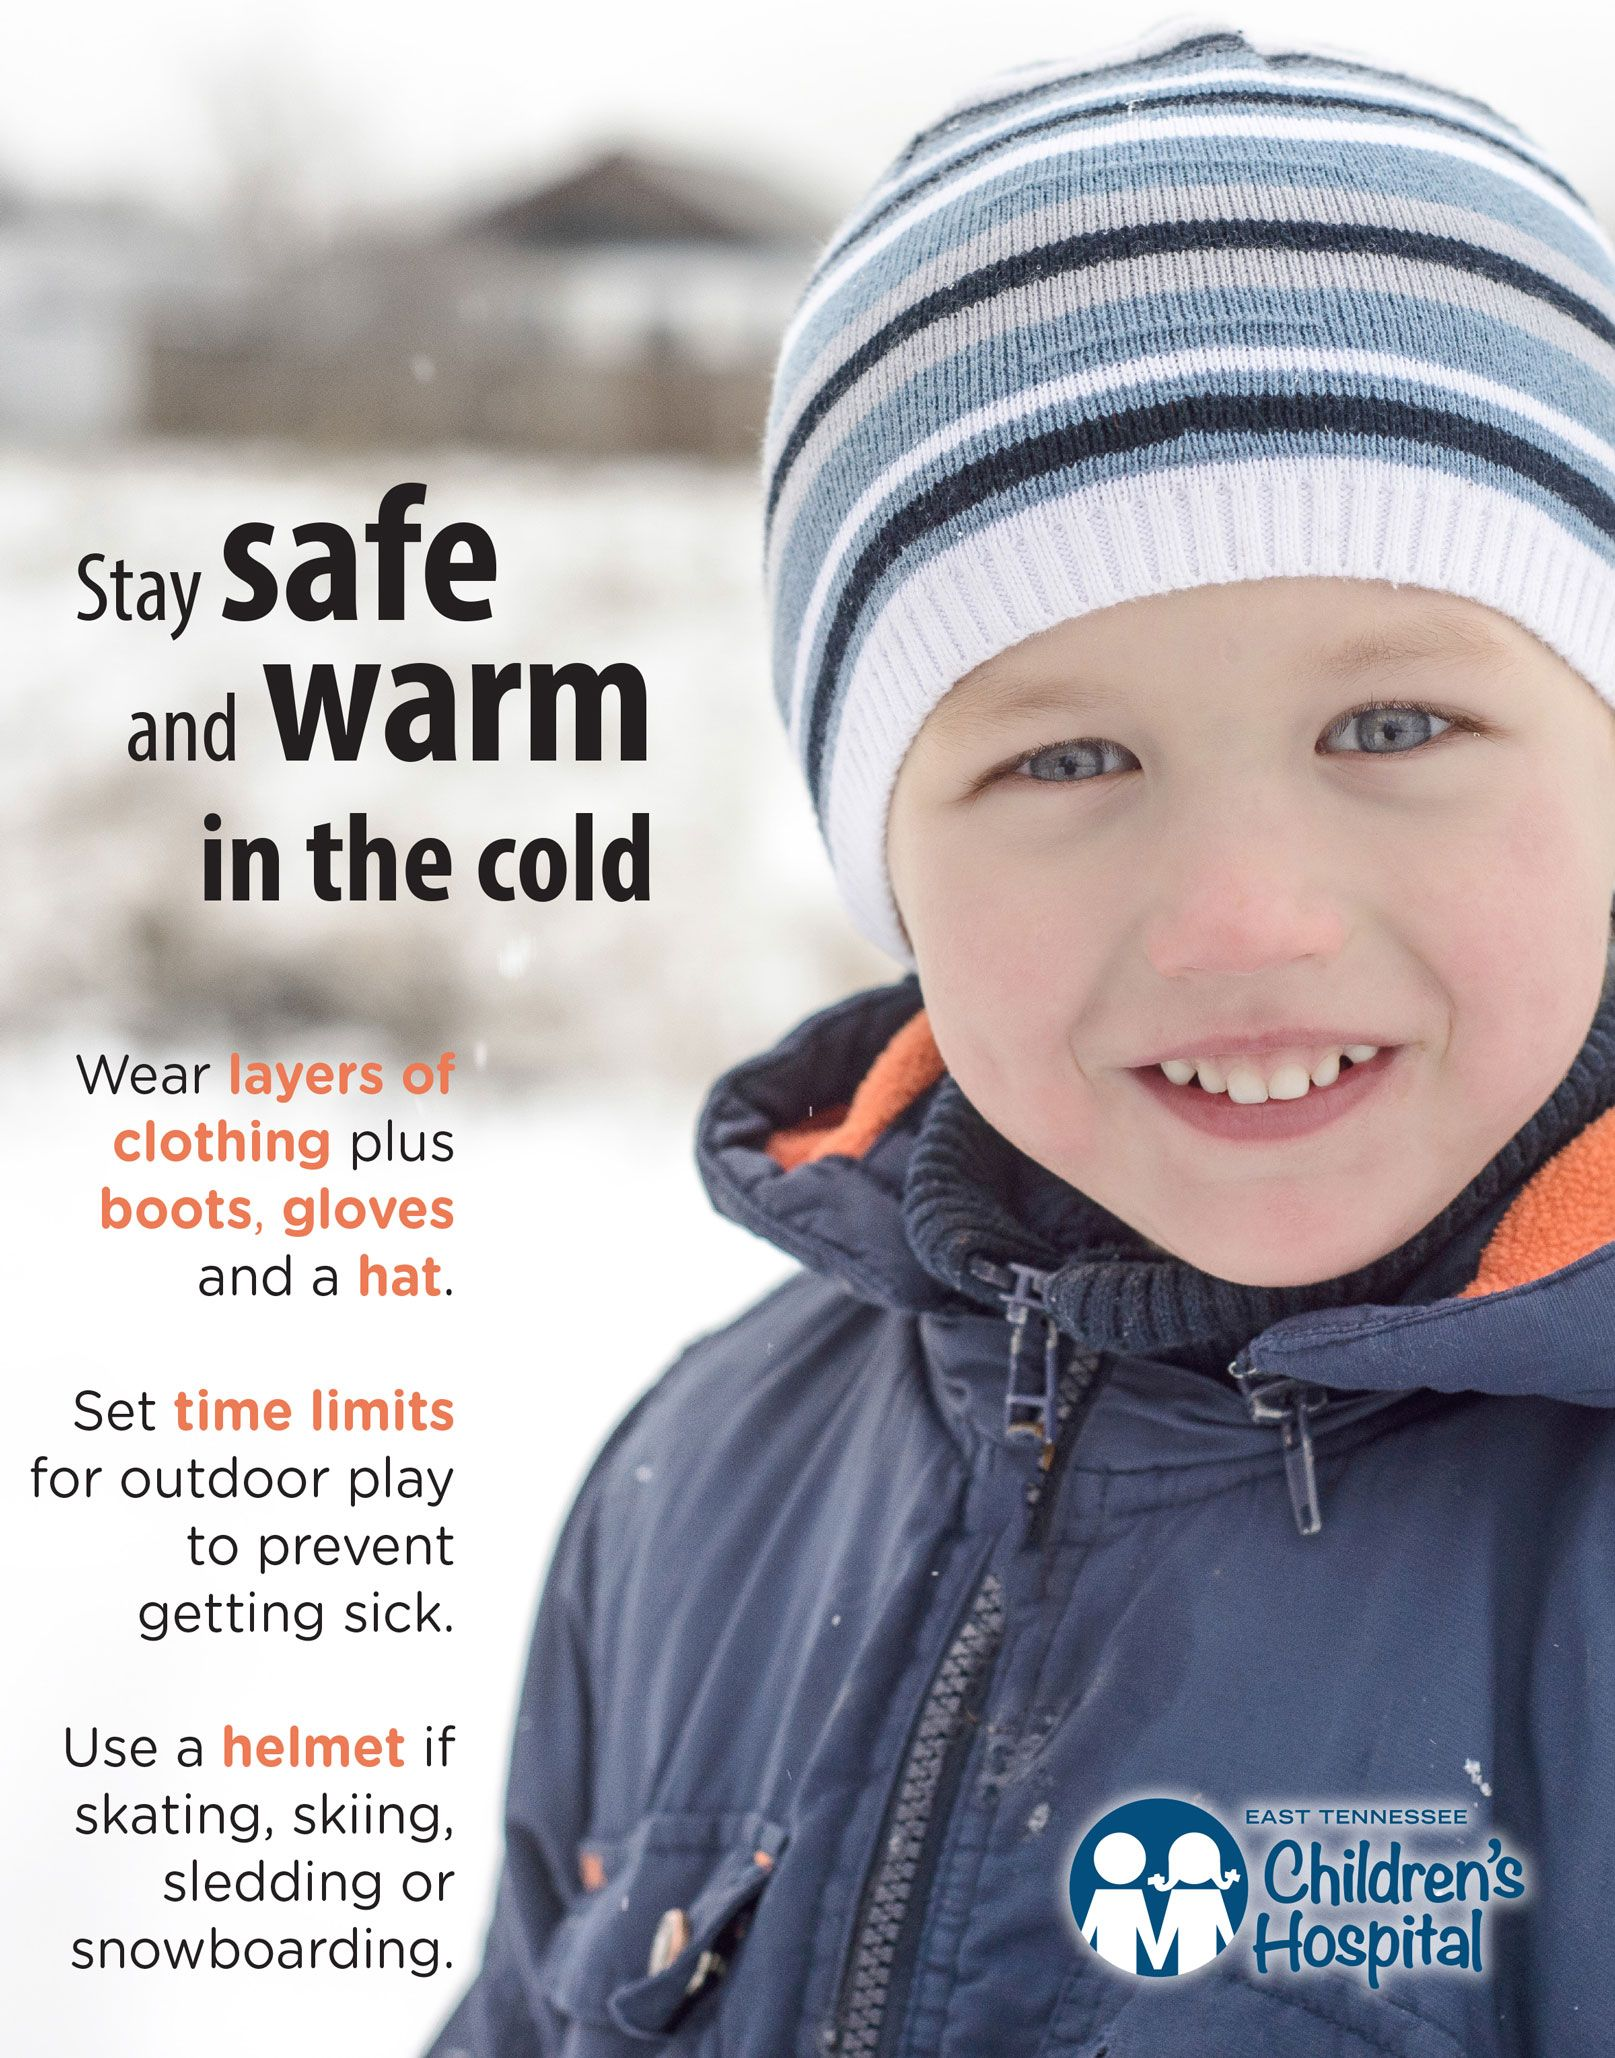 aff658951d74 Stay safe and warm in the cold weather with these winter safety tips ...